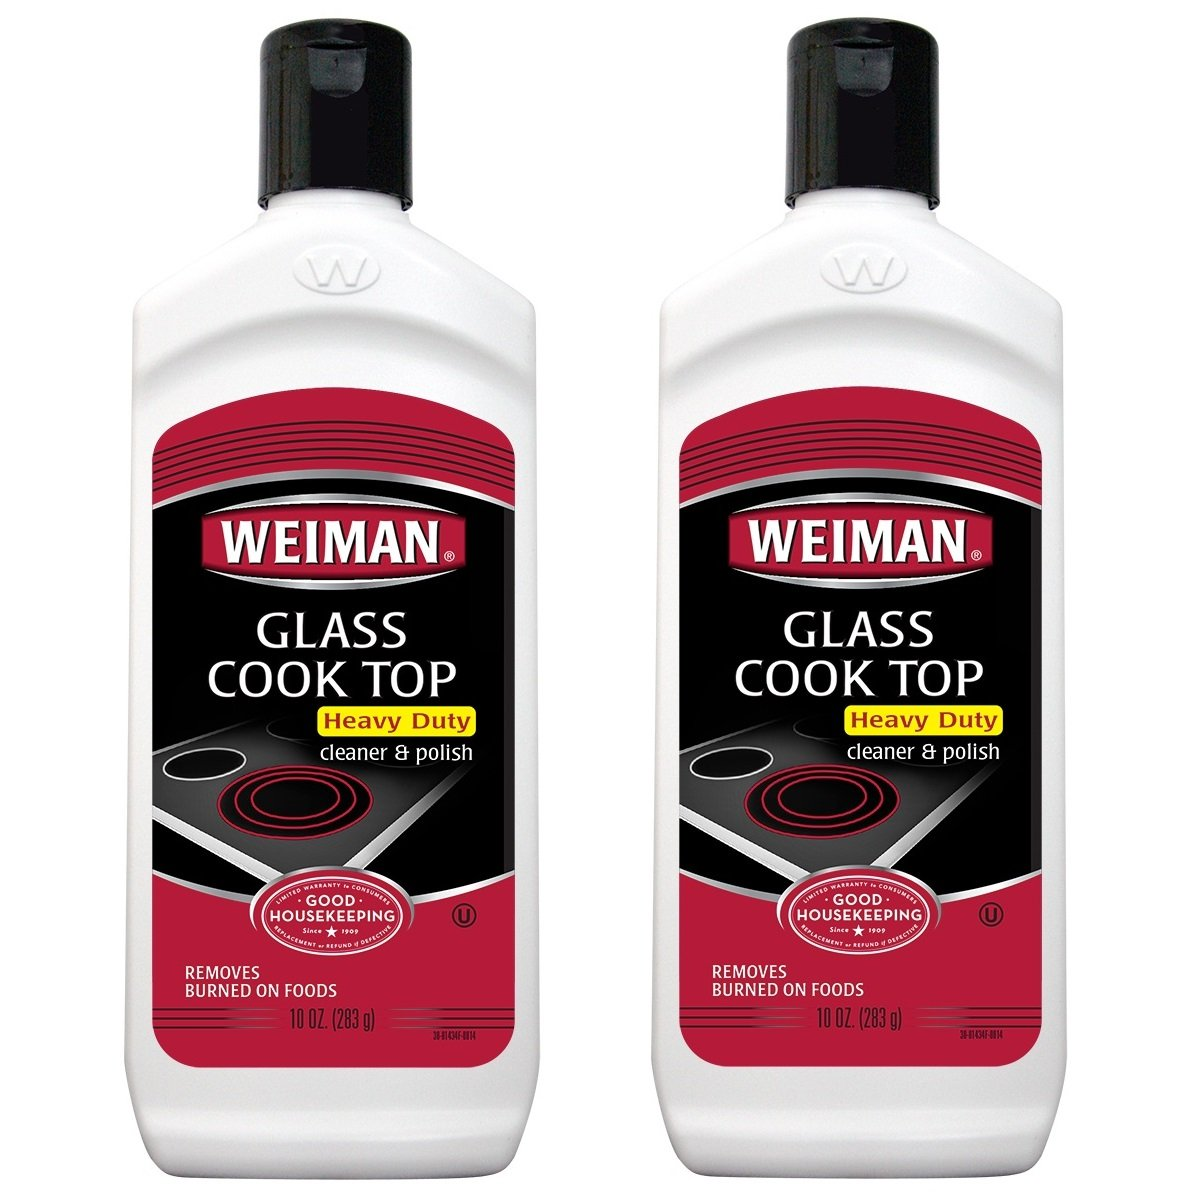 Weiman Glass Cooktop Cleaner and Polish - 10 Ounce - 2 Pack - Heavy Duty Cooktop Scrubbing Pads - Shines and Protects Glass and Ceramic Smooth Top Ranges with Its Gentle Formula